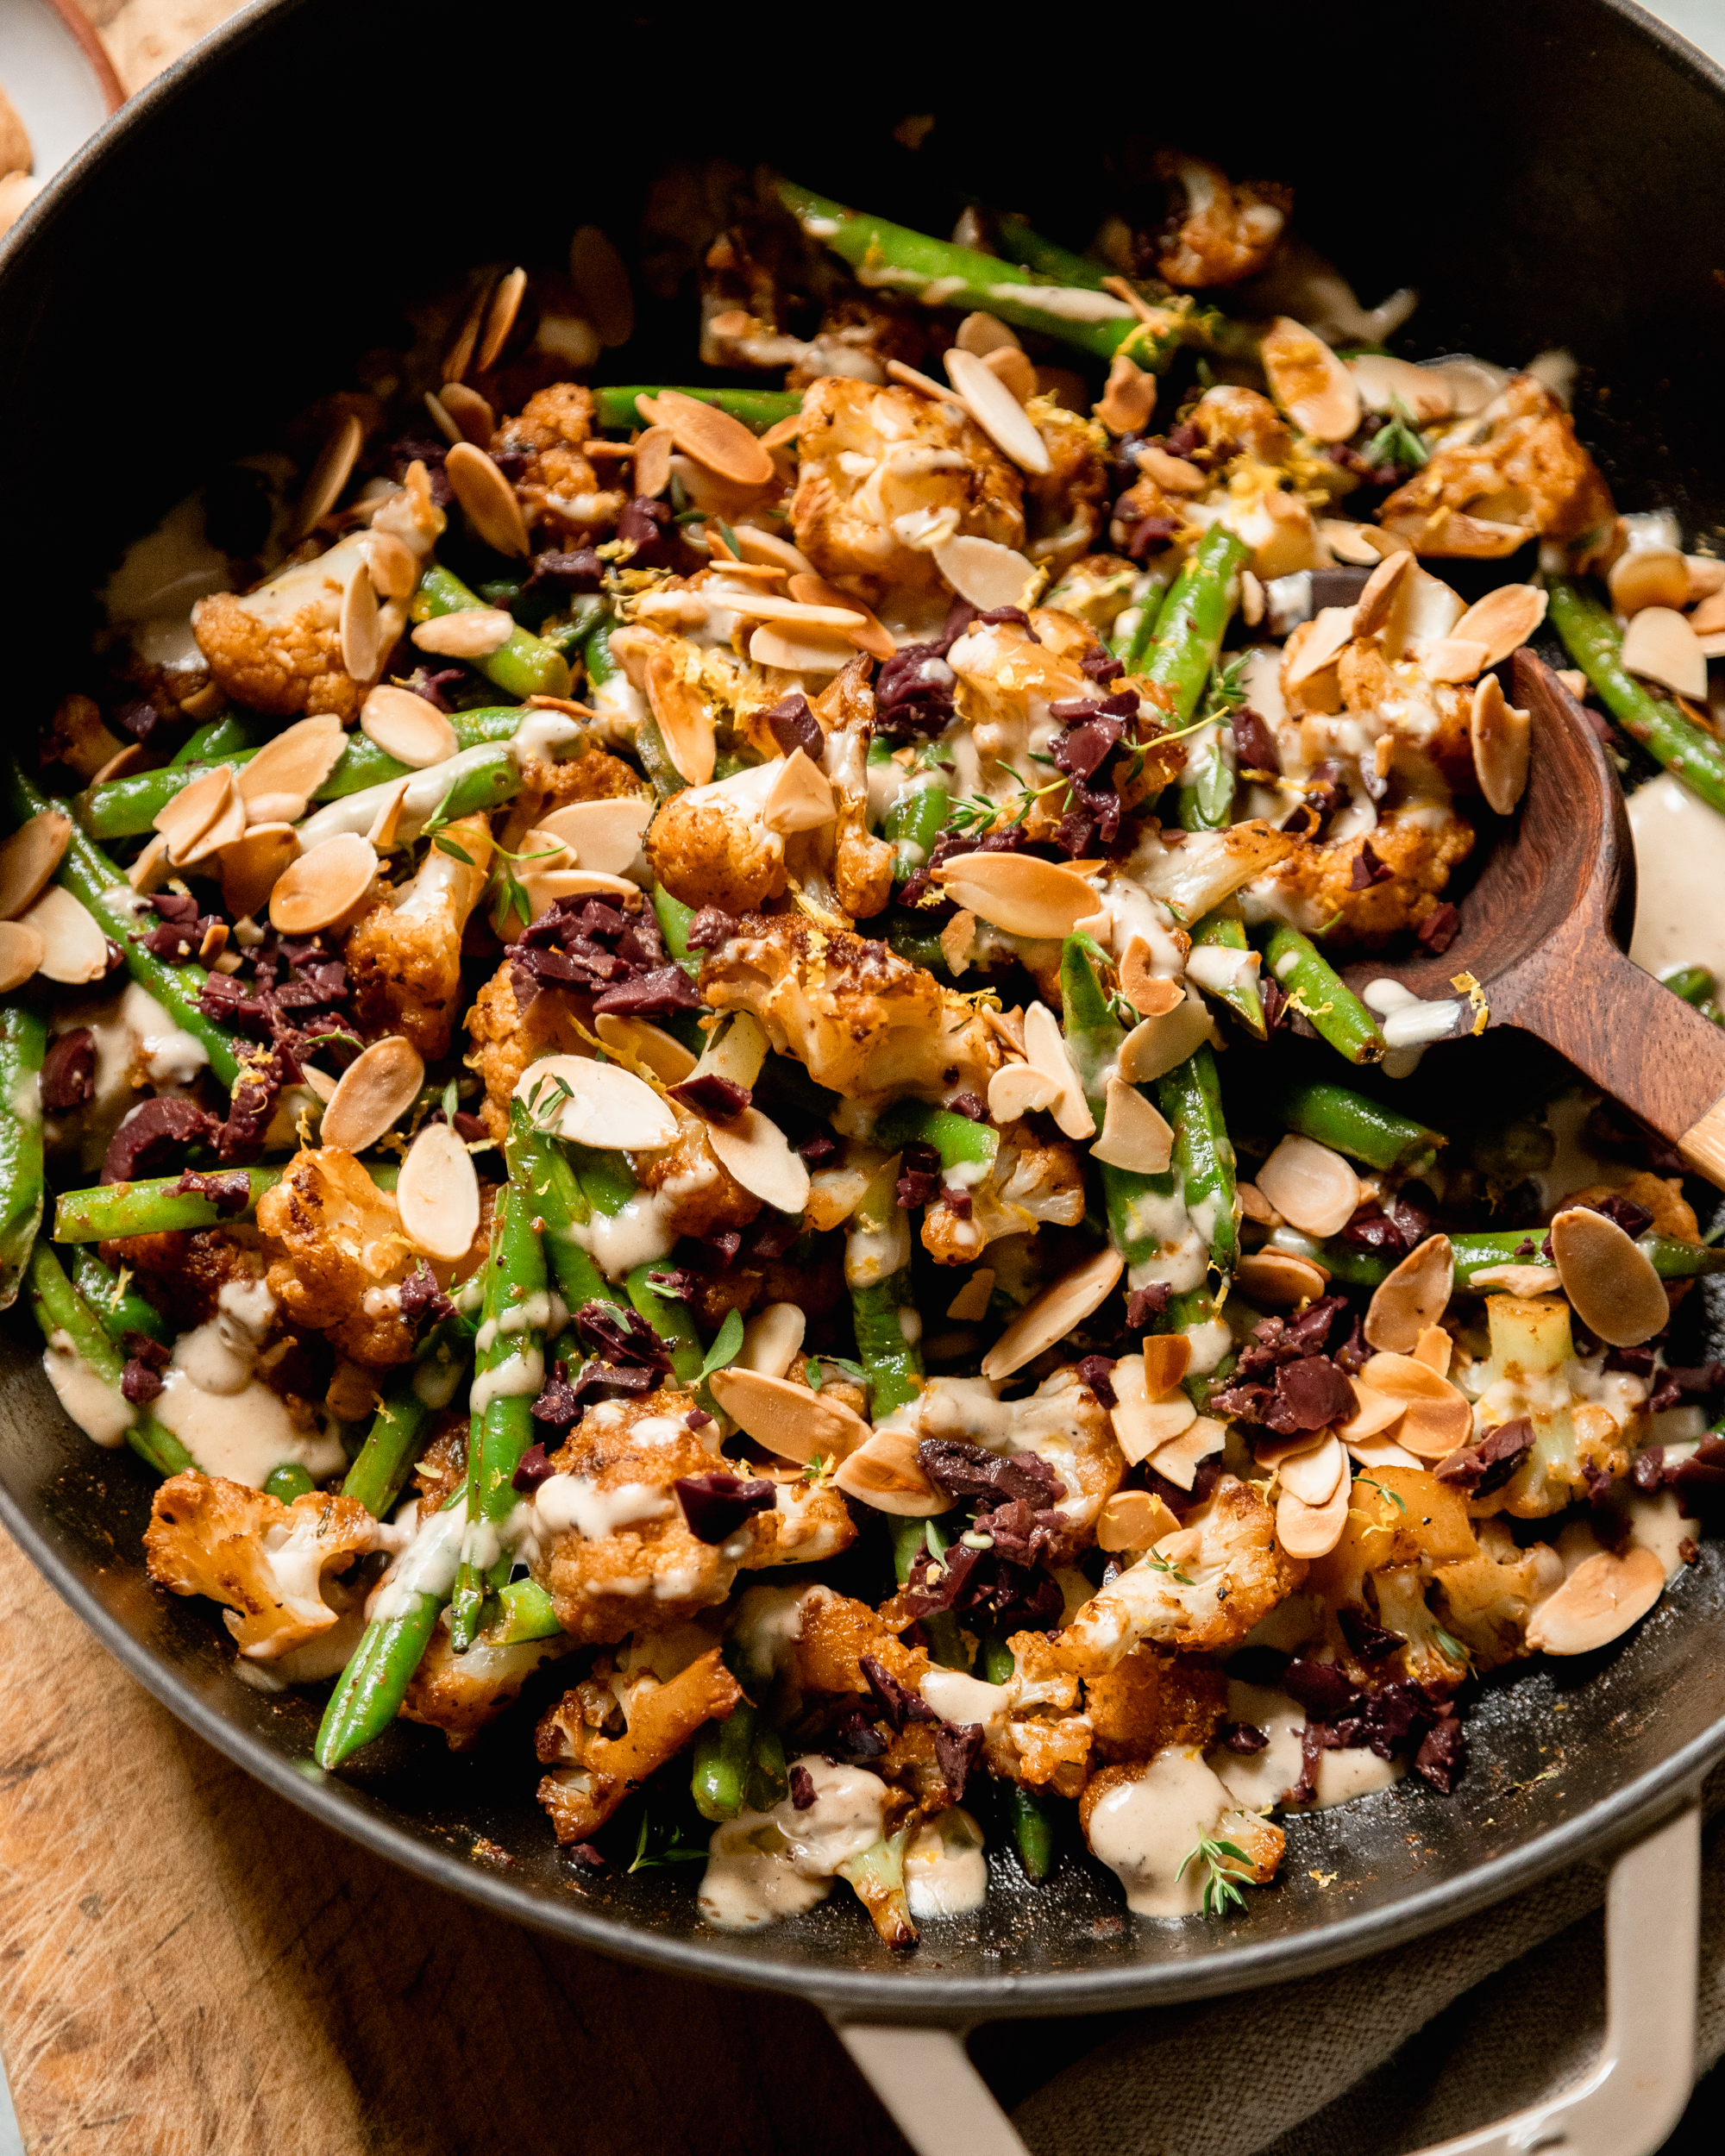 An up close, overhead shot of a sautéed cauliflower and green bean dish that is topped with a creamy sauce, chopped olives, and sliced almonds.